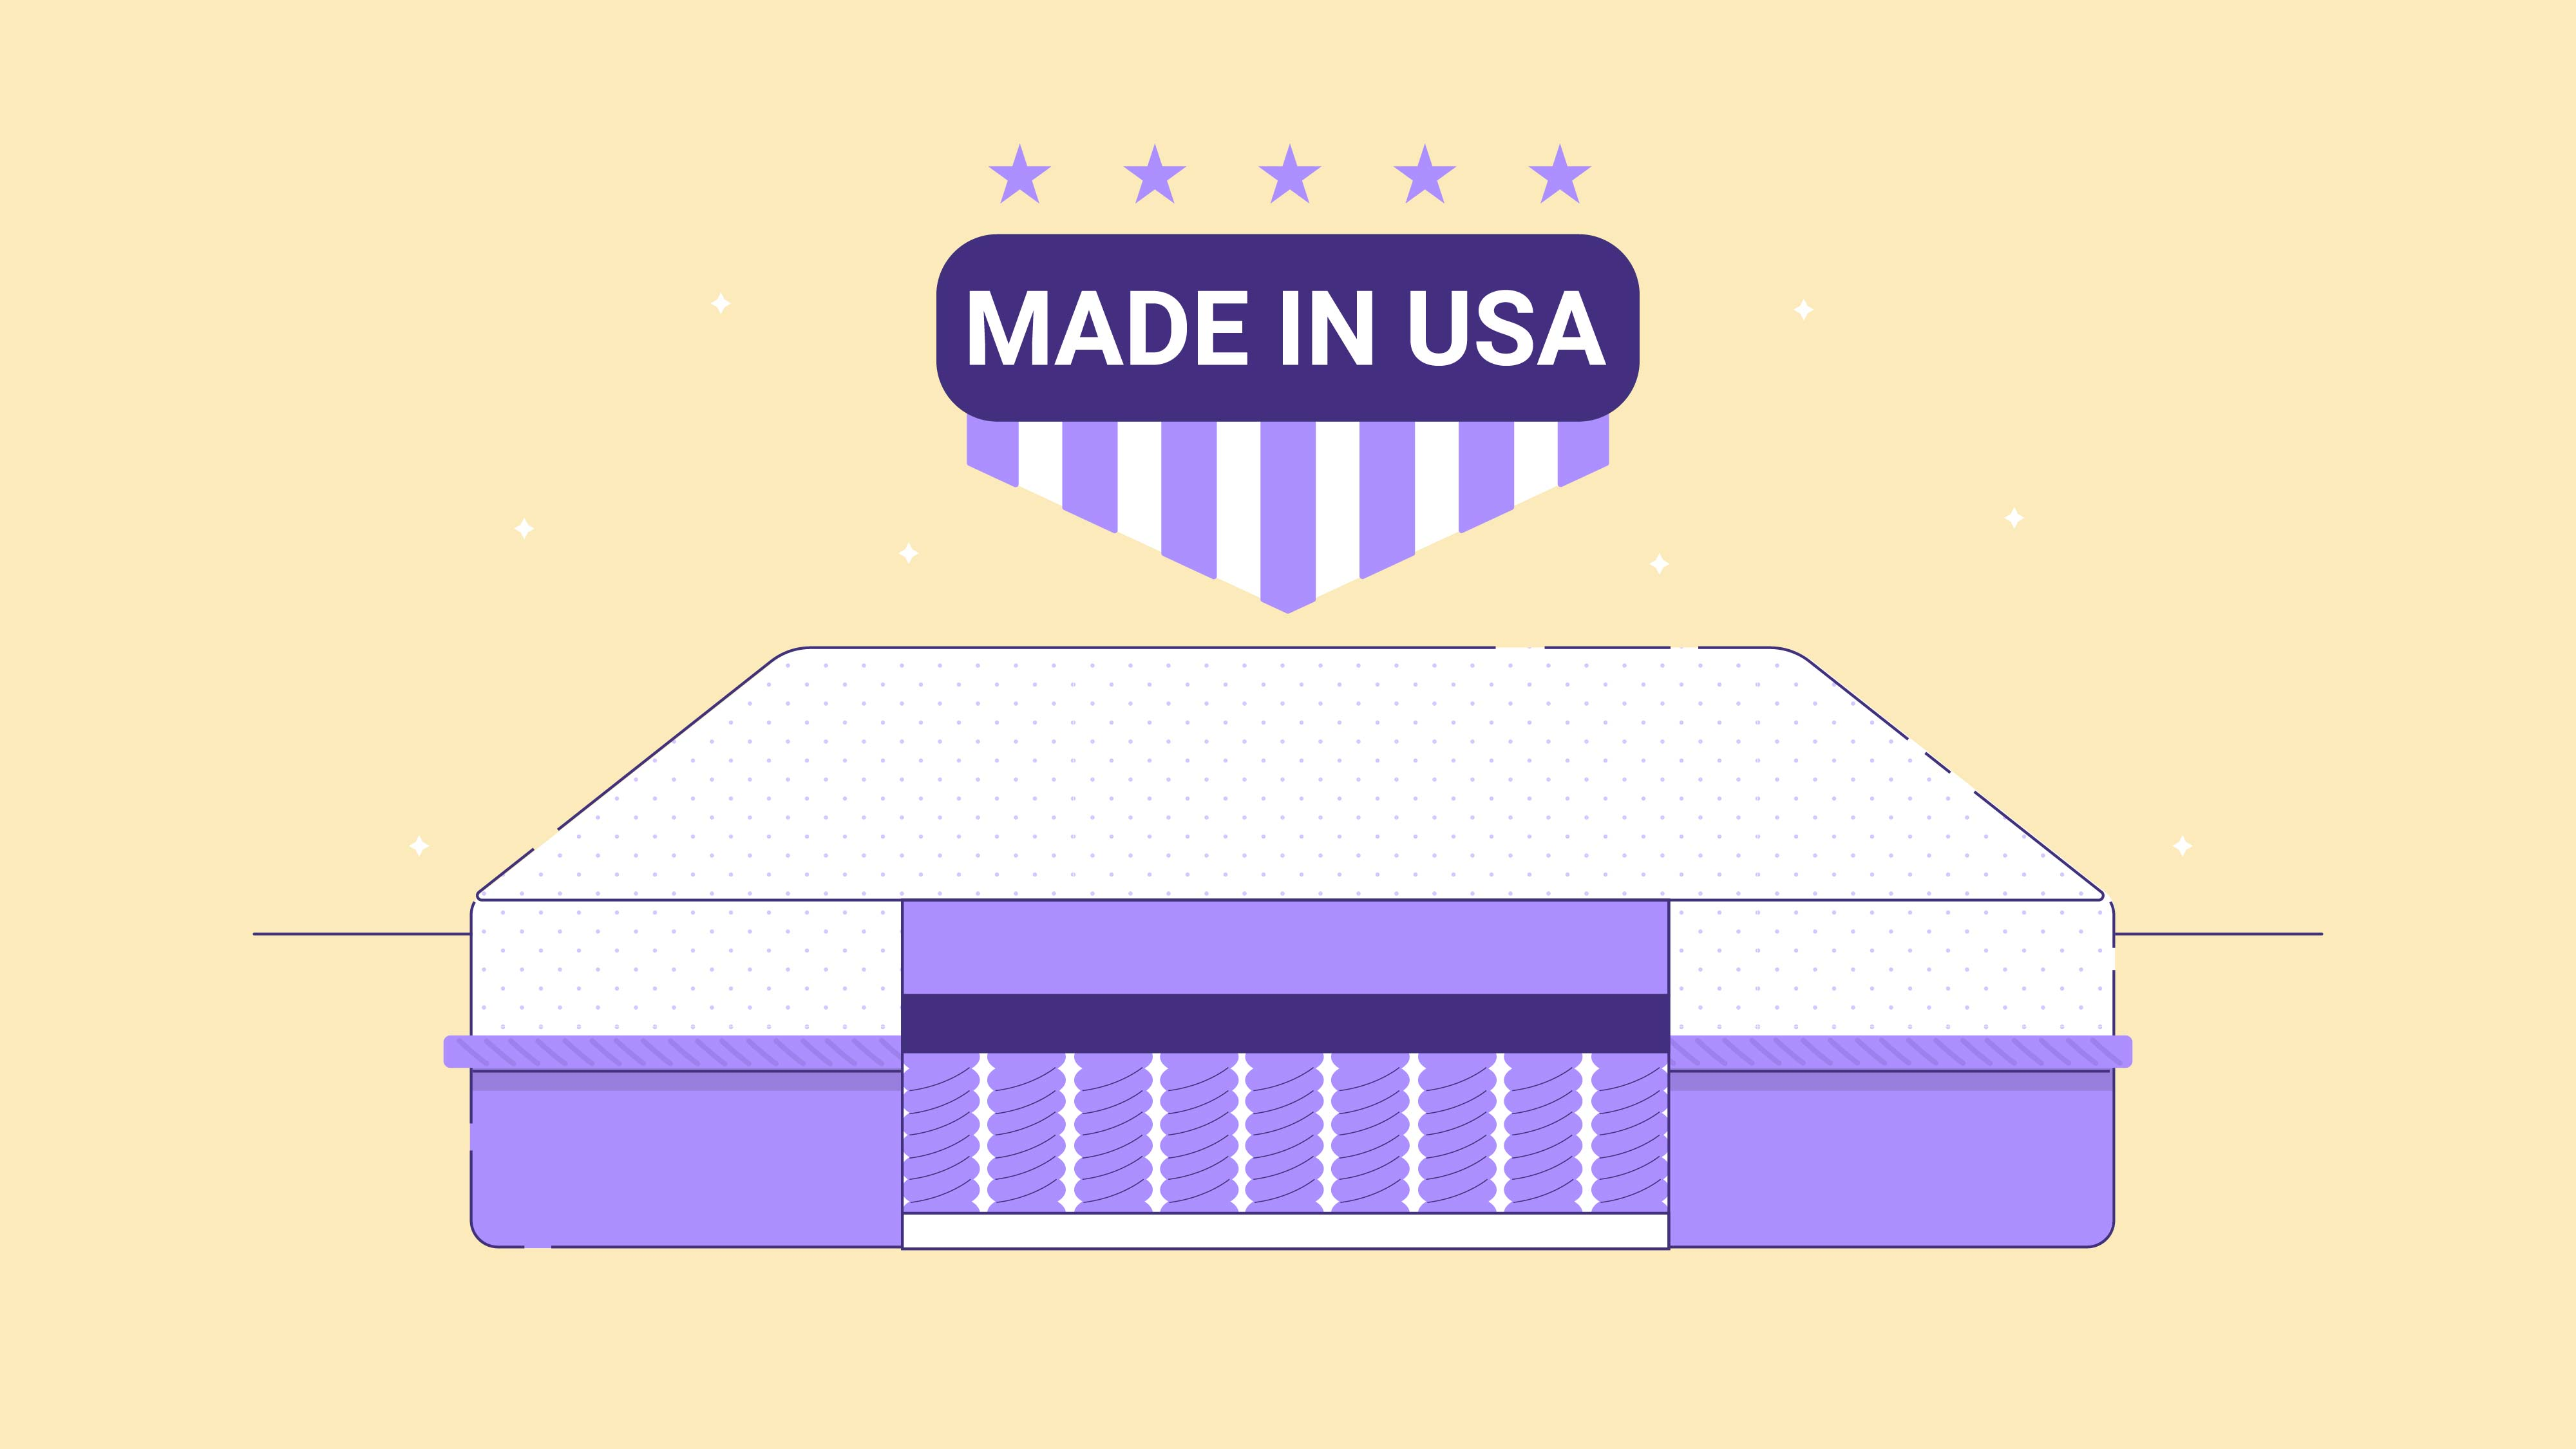 Best Hybrid Mattress Made in the USA (2021): Reviews and Buyer's Guide